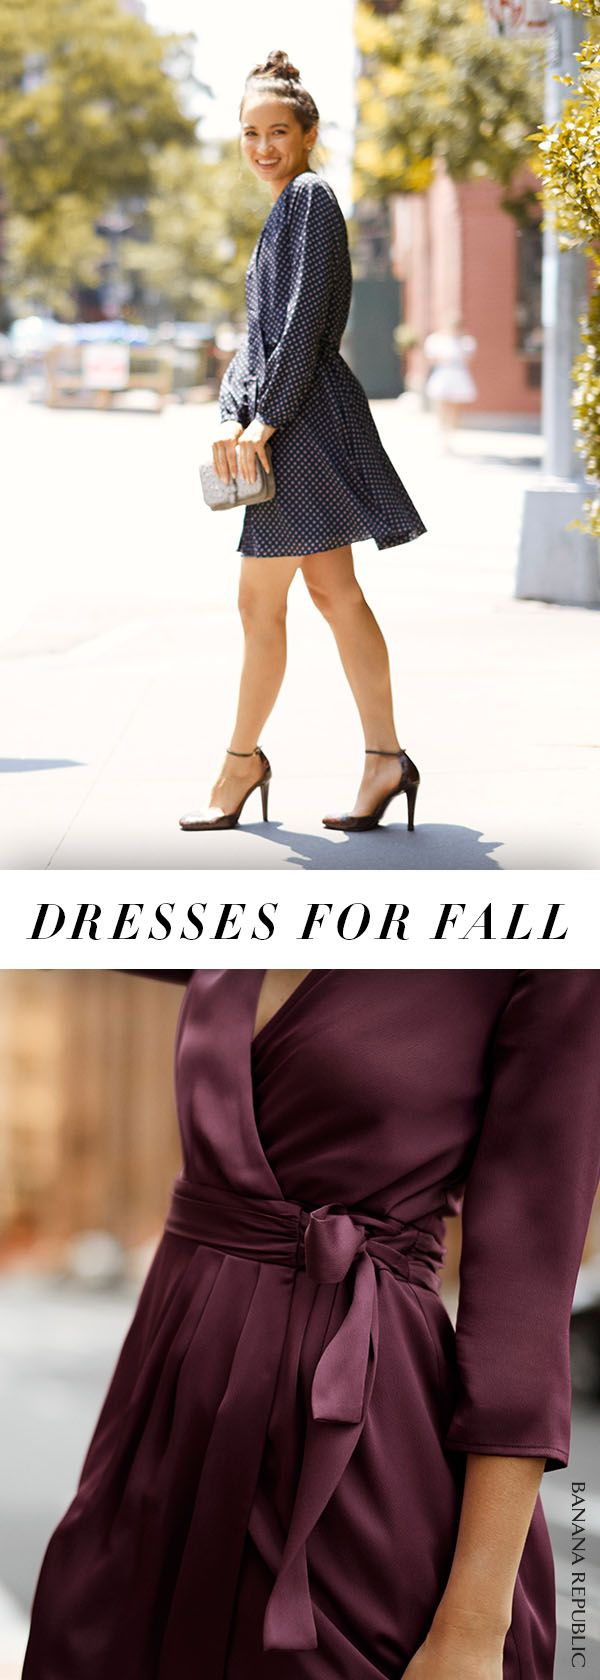 How to sport a dress on fall's chillier days: go long sleeved! These one-piece wonders feature flowy fabrics with feminine details like ruffles and bows in deep, rich colors for fall. Wear them with flats, heels or booties for everyday style. | Banana Republic